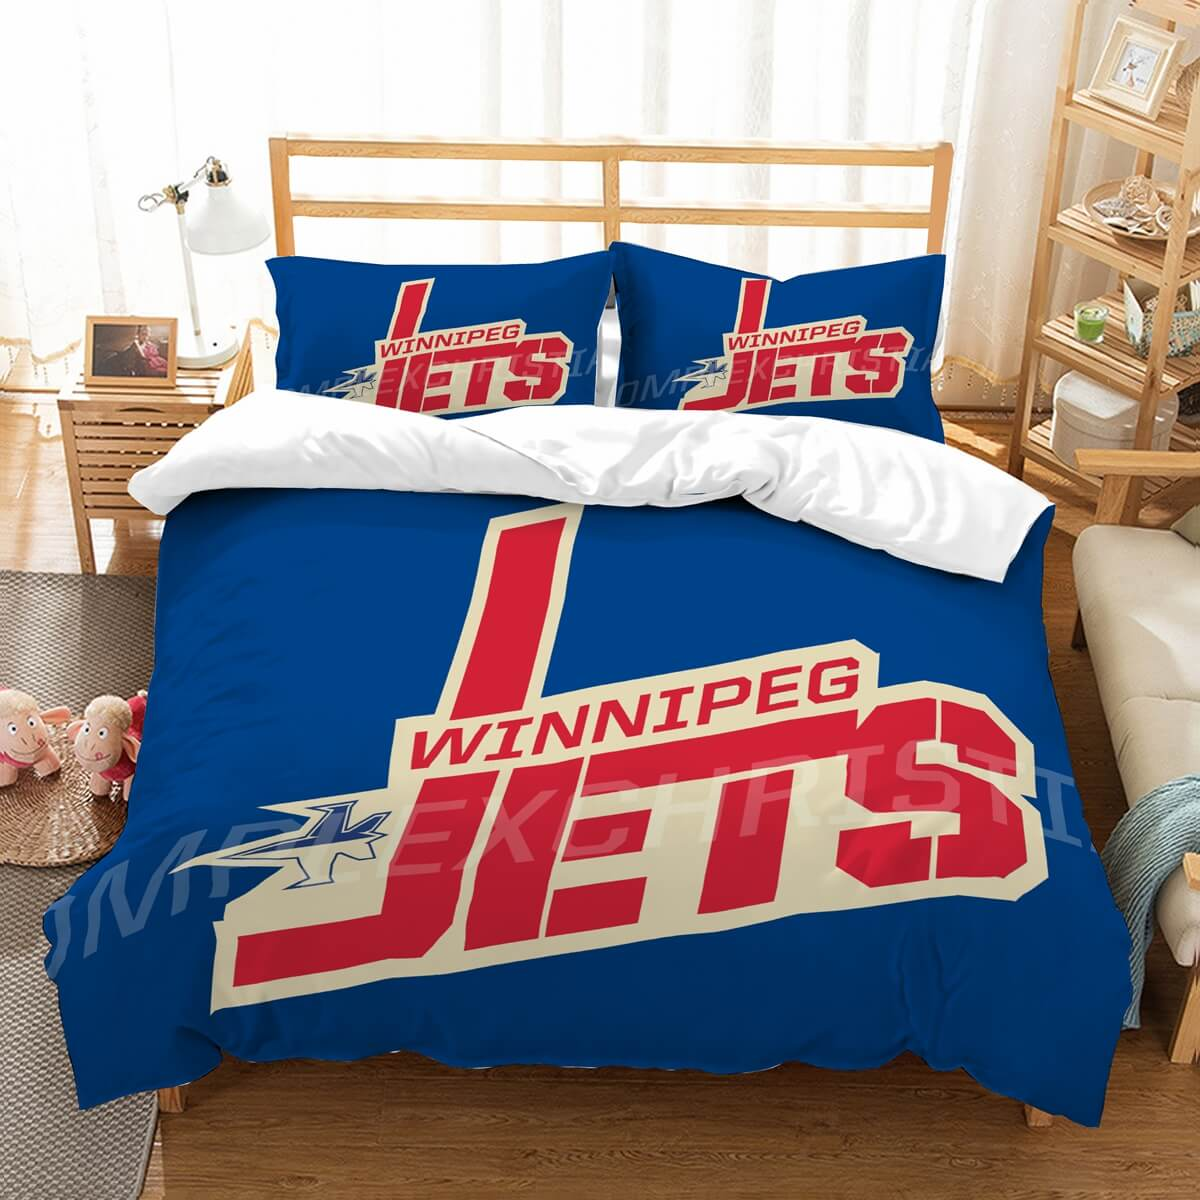 3D Customize Winnipeg Jets  Bedding Set Duvet Cover Set Bedroom Set Bedlinen